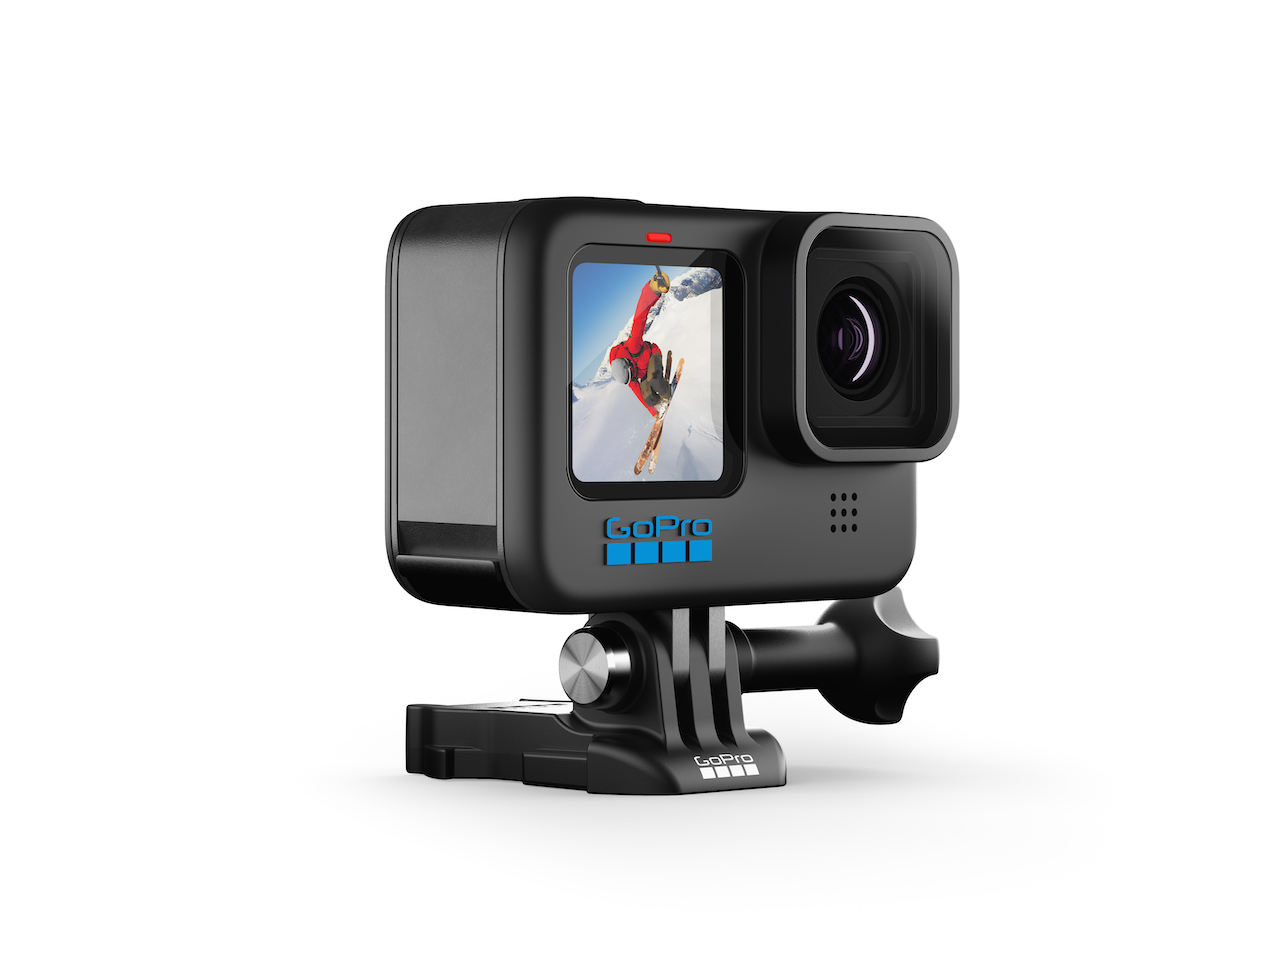 If you've got travel adventures on the mind, be sure to pack the new GoPro Hero 10 Black, which offers great quality stills and video in a tiny, rugged package.